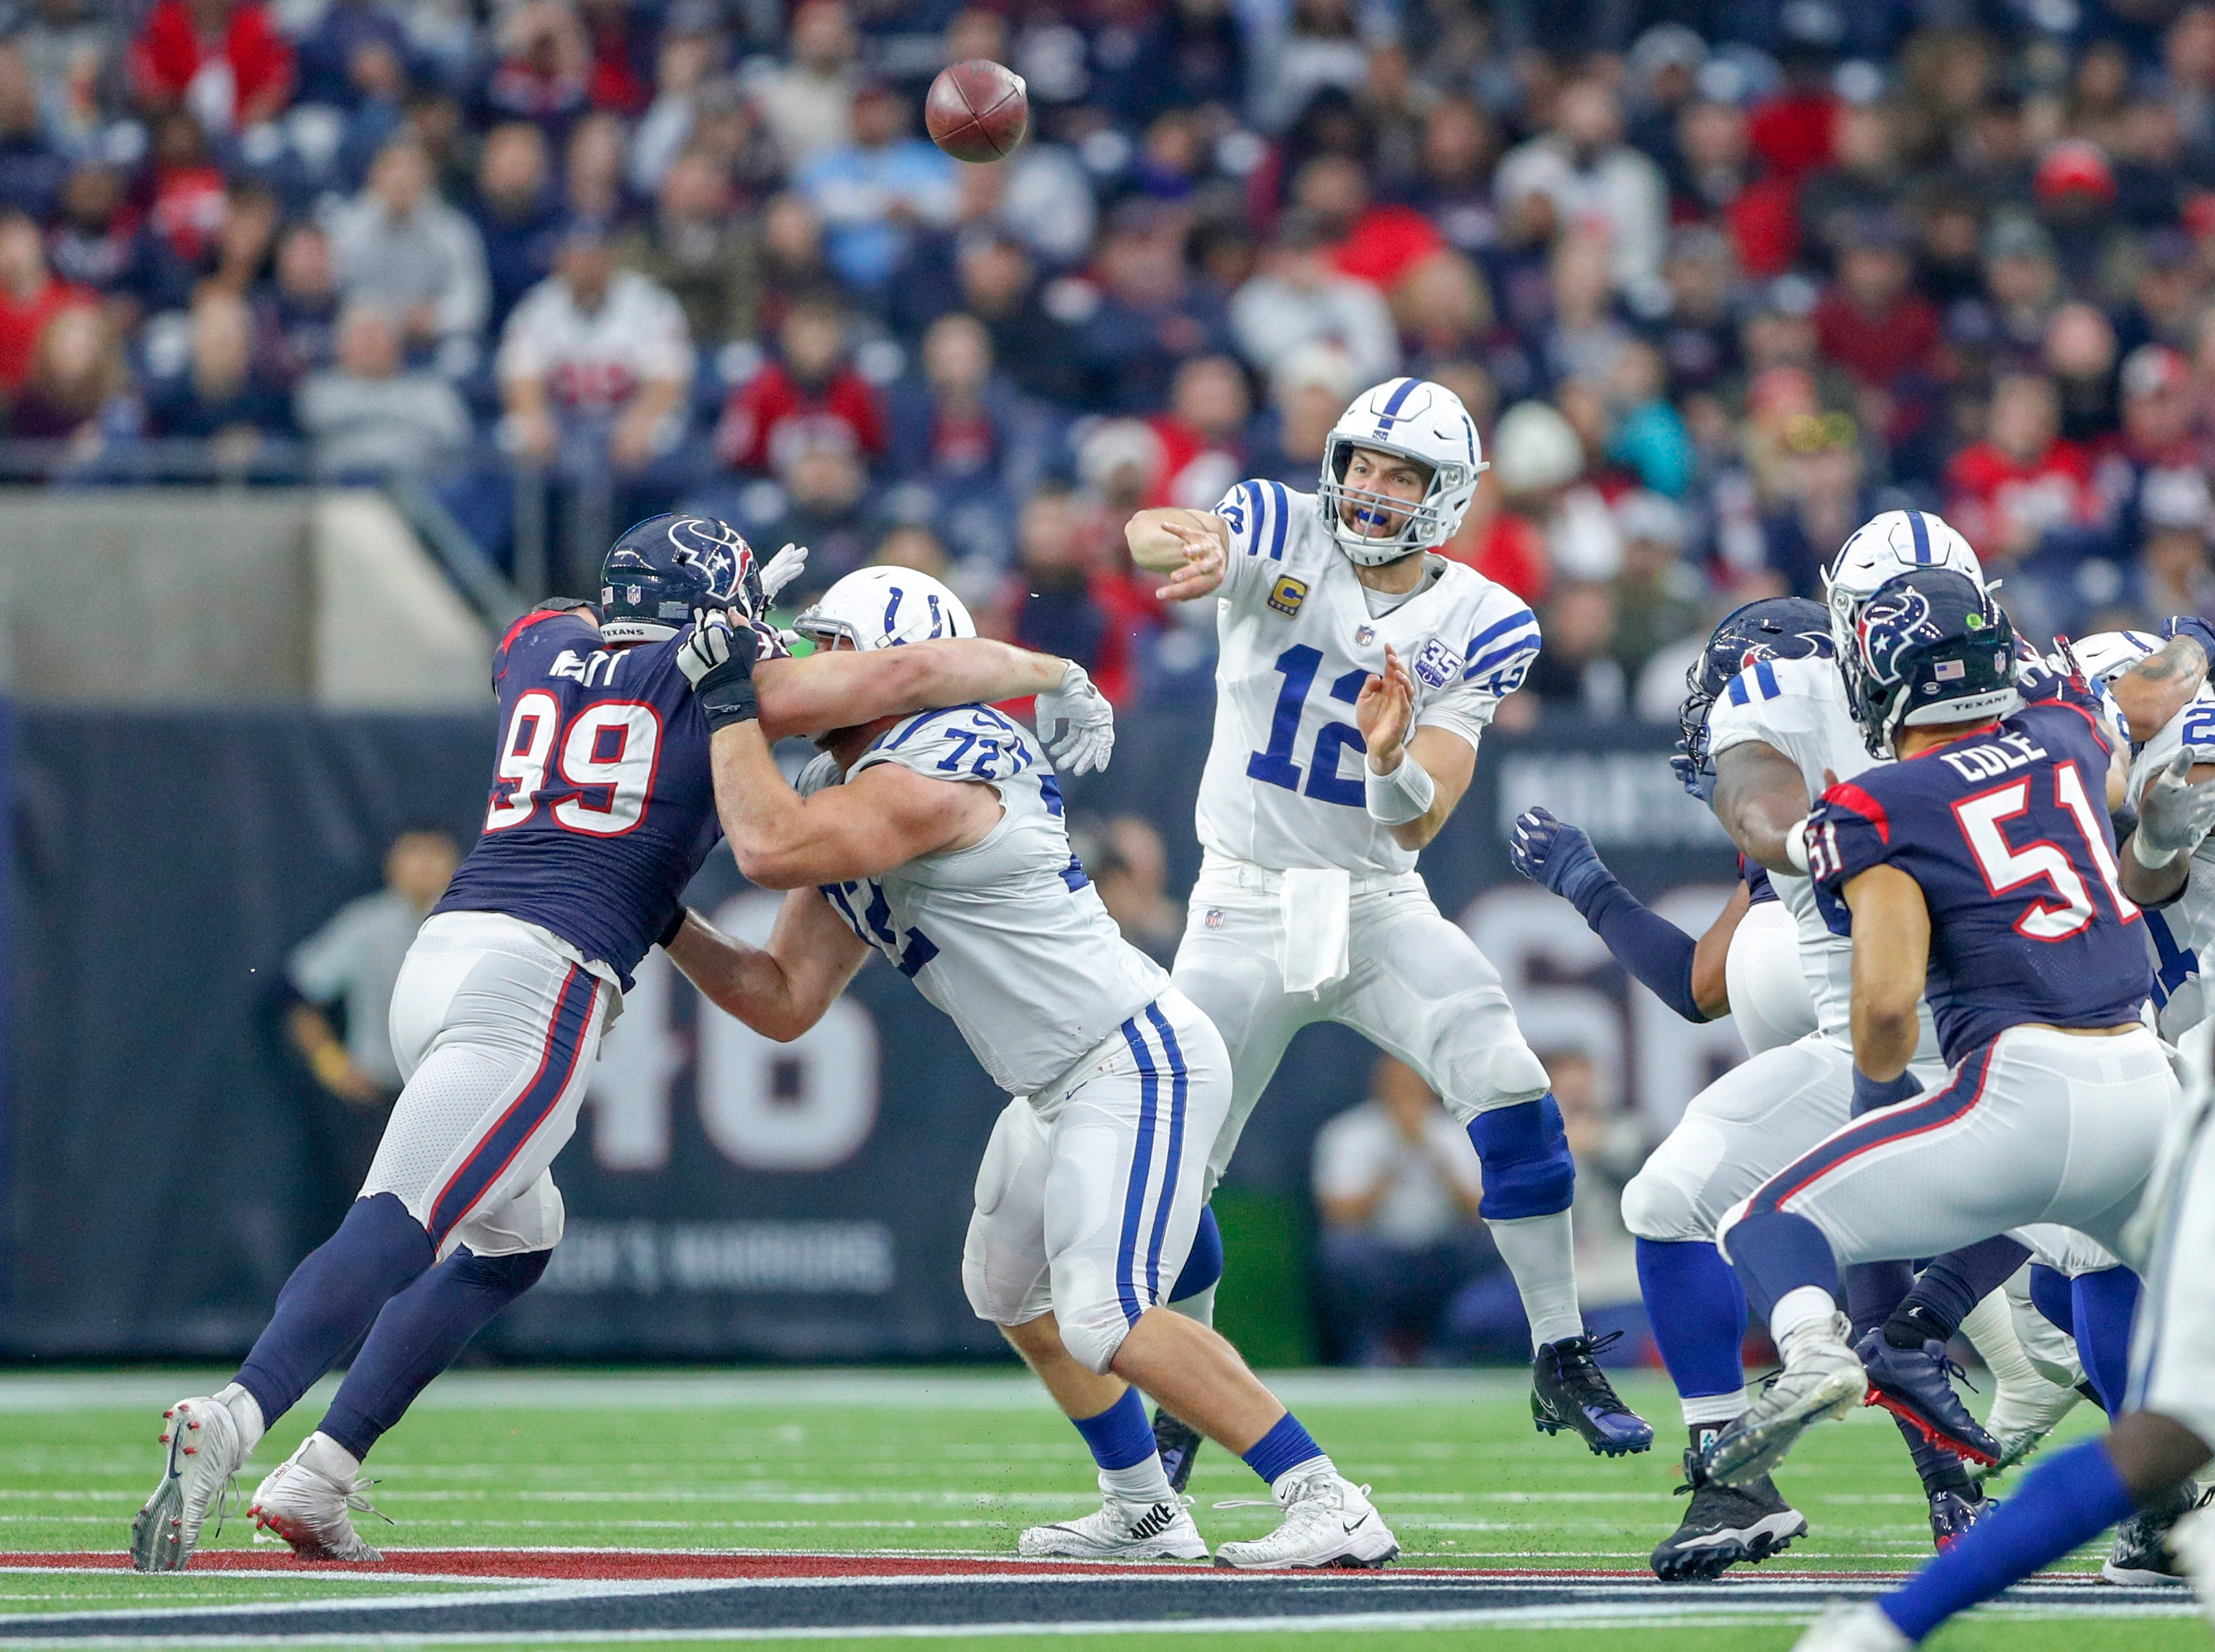 Indianapolis Colts quarterback Andrew Luck (12) throws against the Houston Texans in the fourth quarter at NRG Stadium in Houston on Sunday, Dec. 9, 2018.